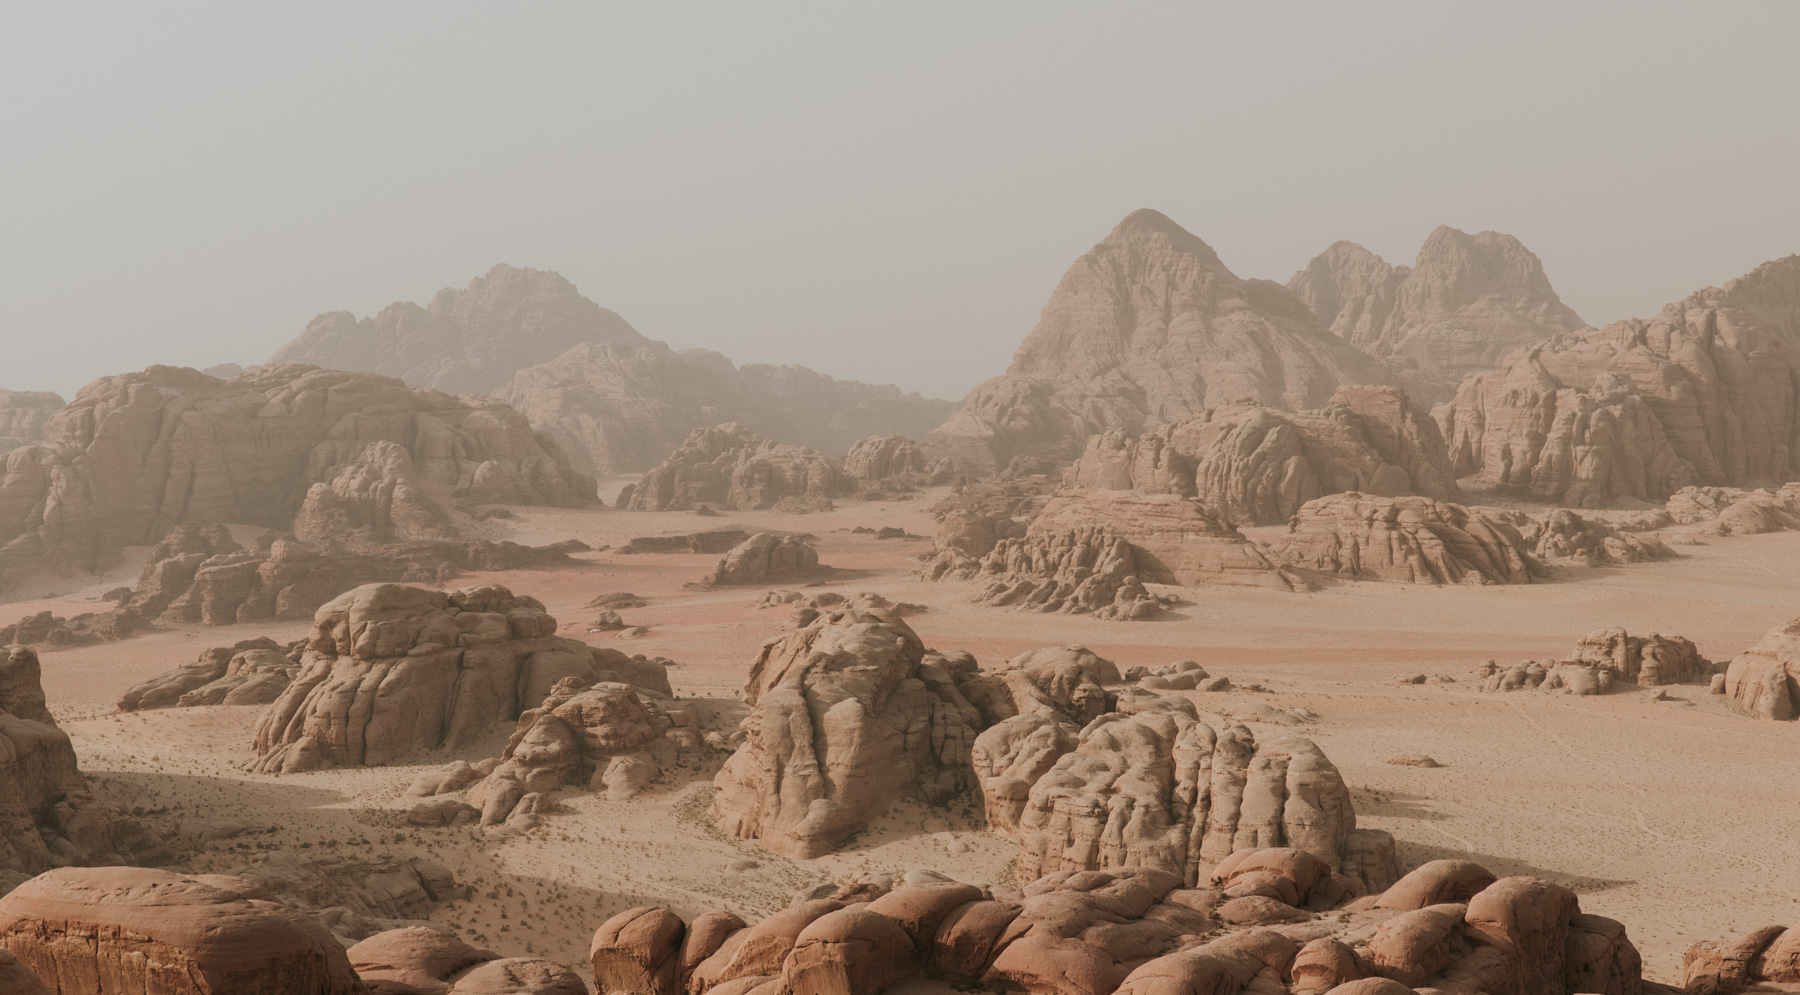 Jordan Wadi Rum Imaging Your Story Lucie Allard Photography Nice Home page